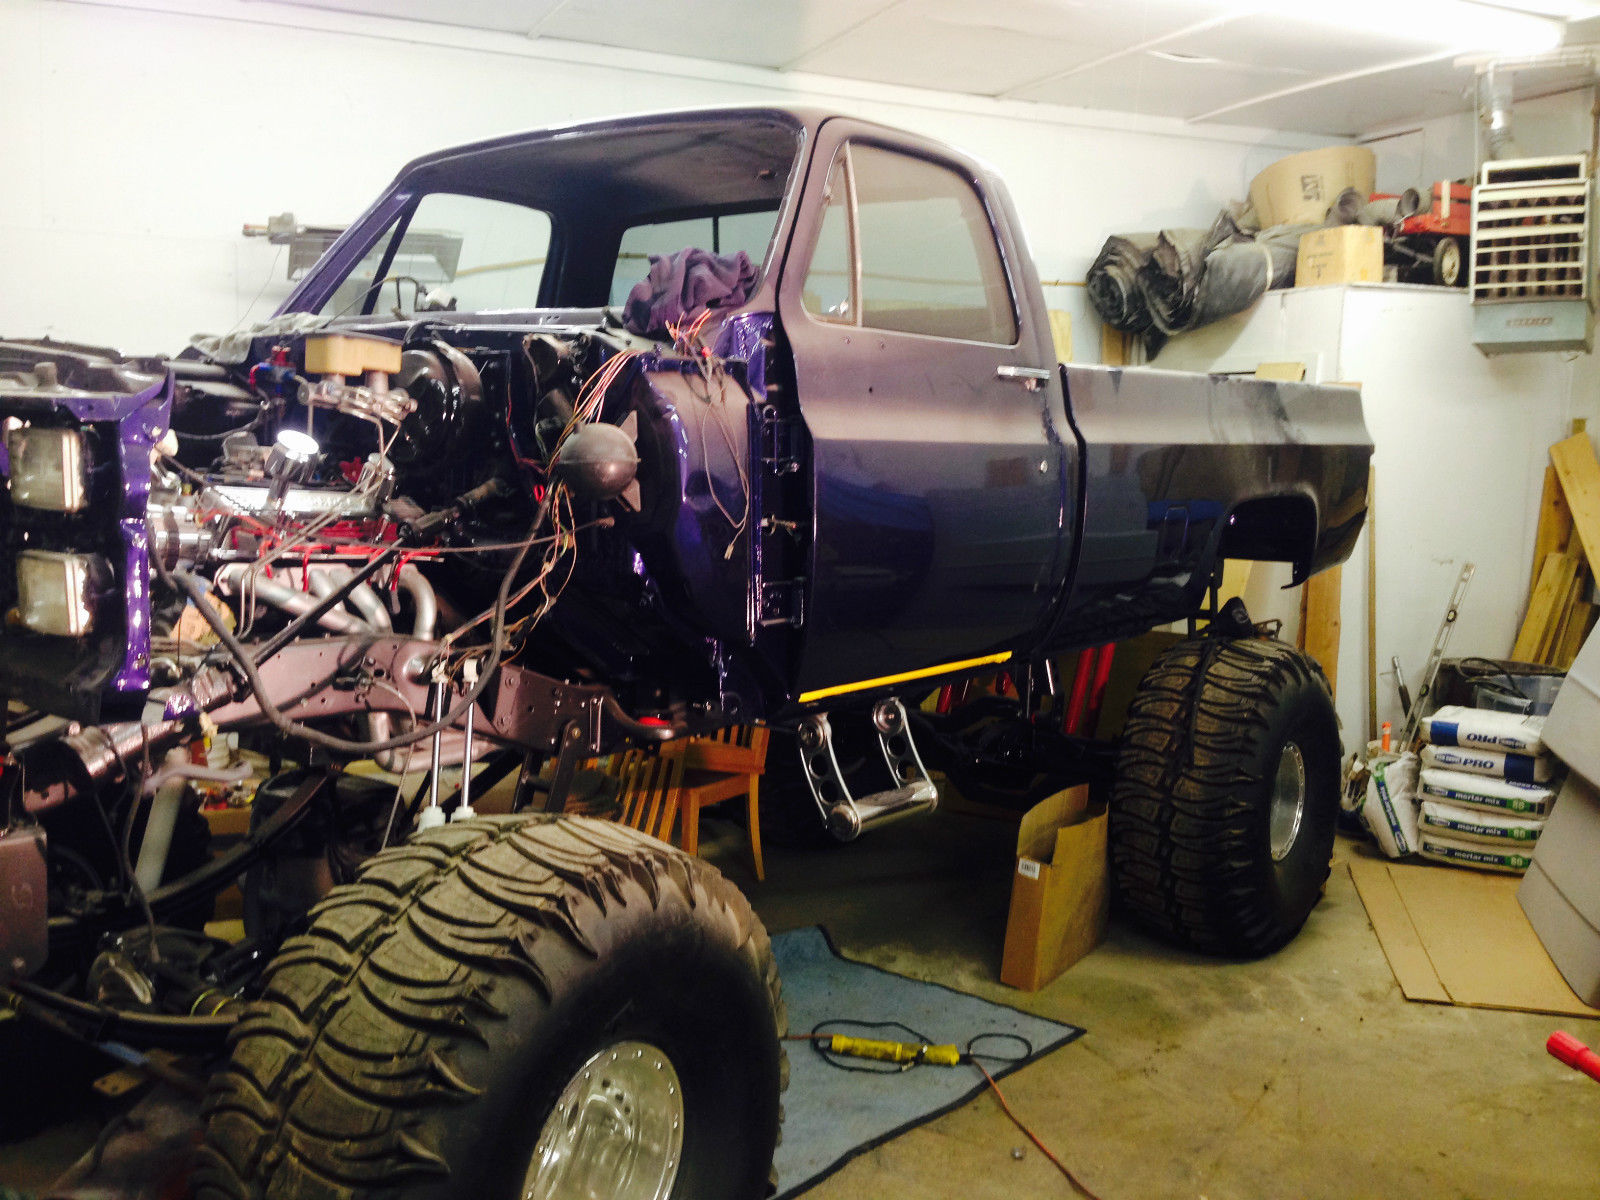 1987 GMC Sierra 1500 | Monster trucks for sale